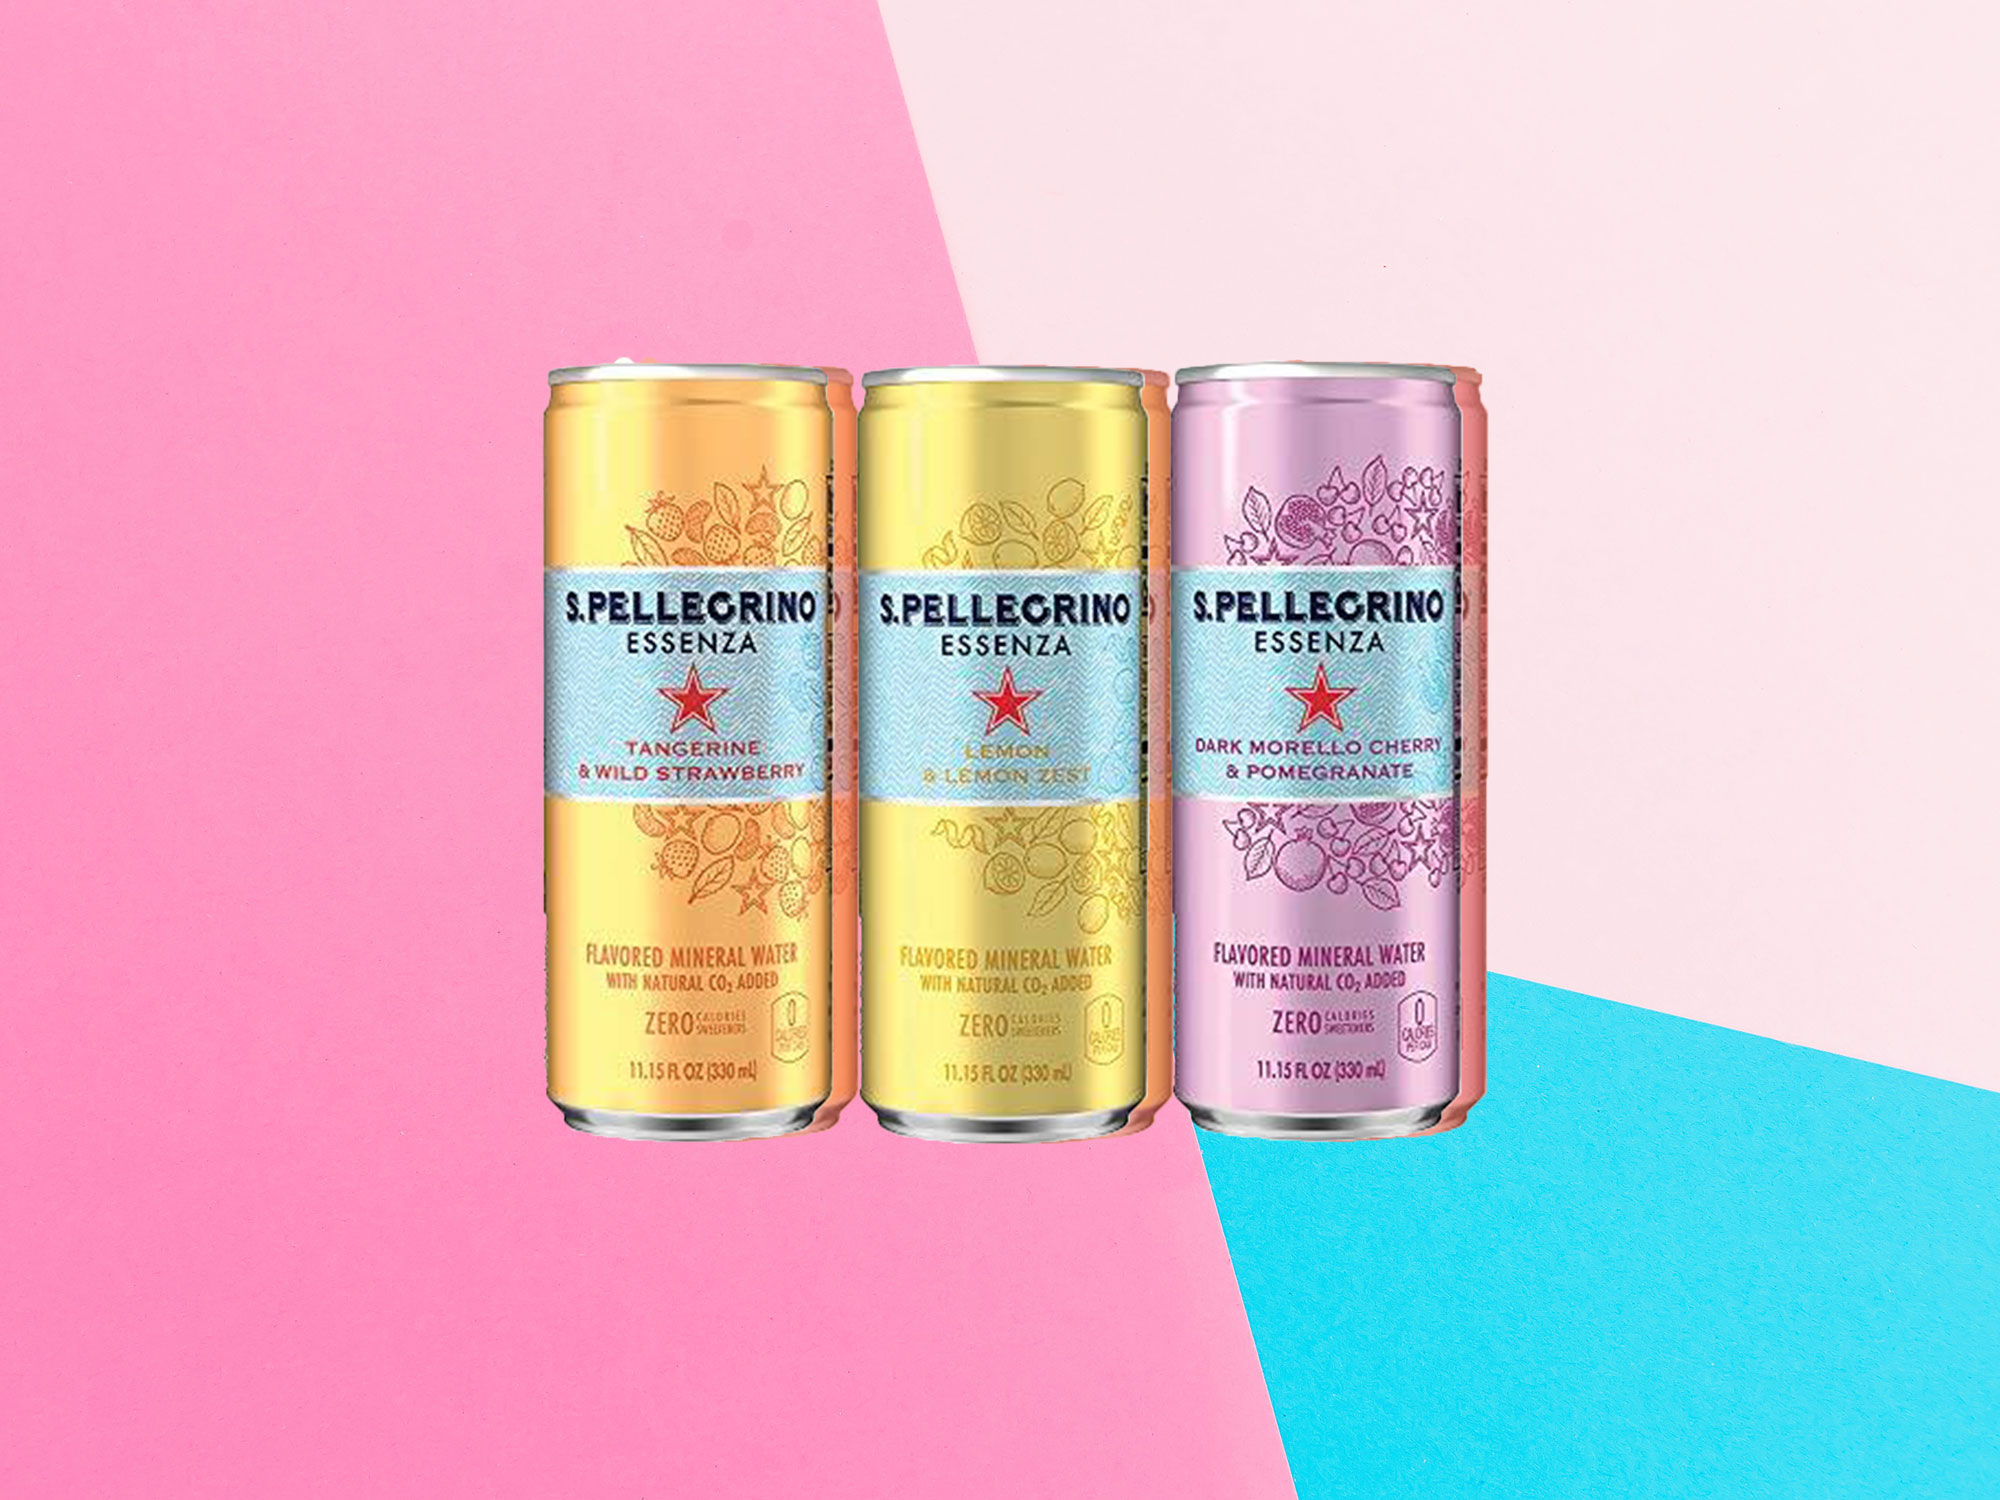 S Pellegrino Introduces 3 New Flavors of Sparkling Water